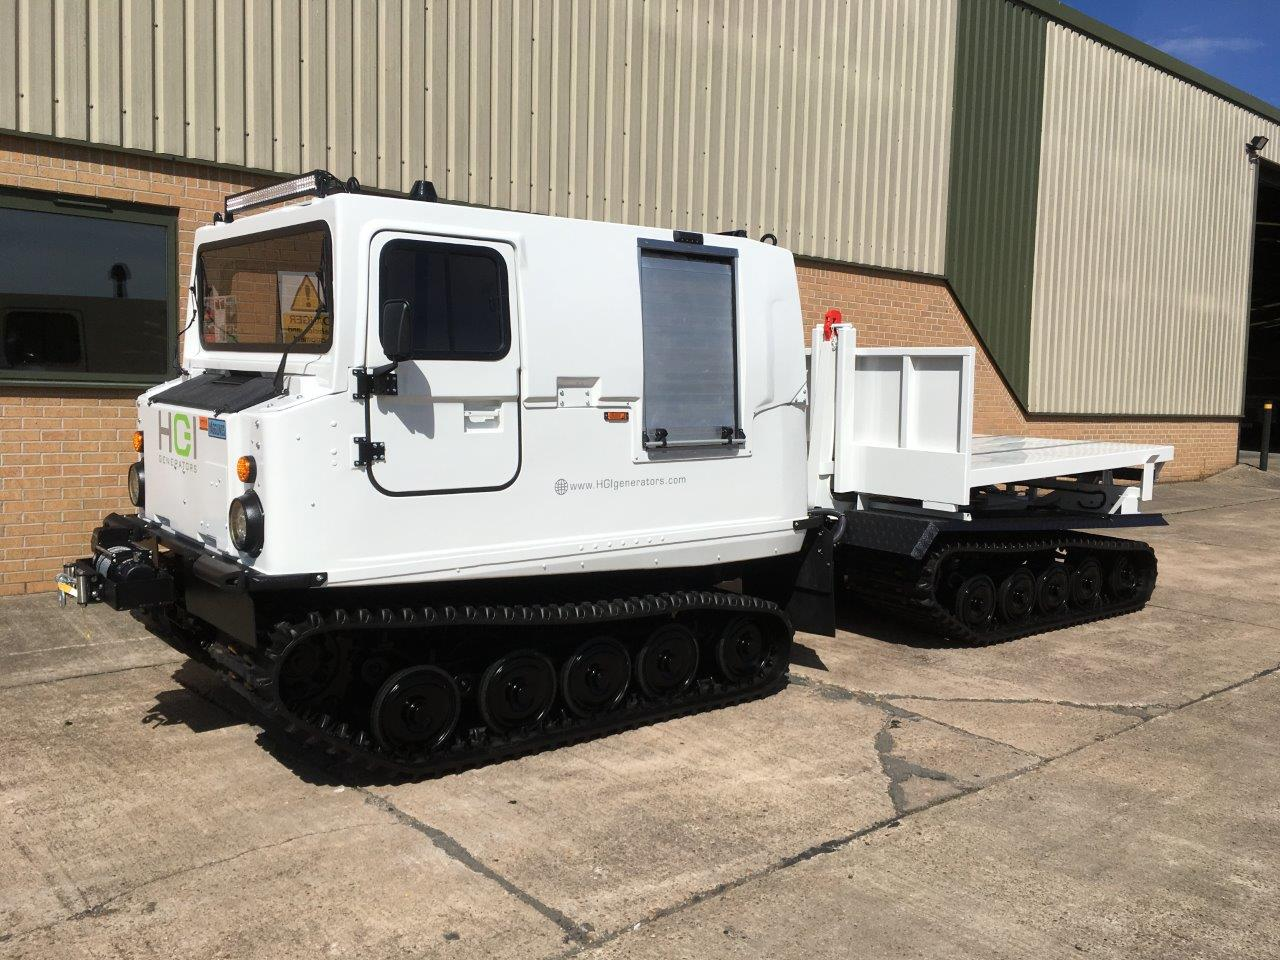 Hagglunds Bv206 DROPS Body Unit for sale | for sale in Angola, Kenya,  Nigeria, Tanzania, Mozambique, South Africa, Zambia, Ghana- Sale In  Africa and the Middle East